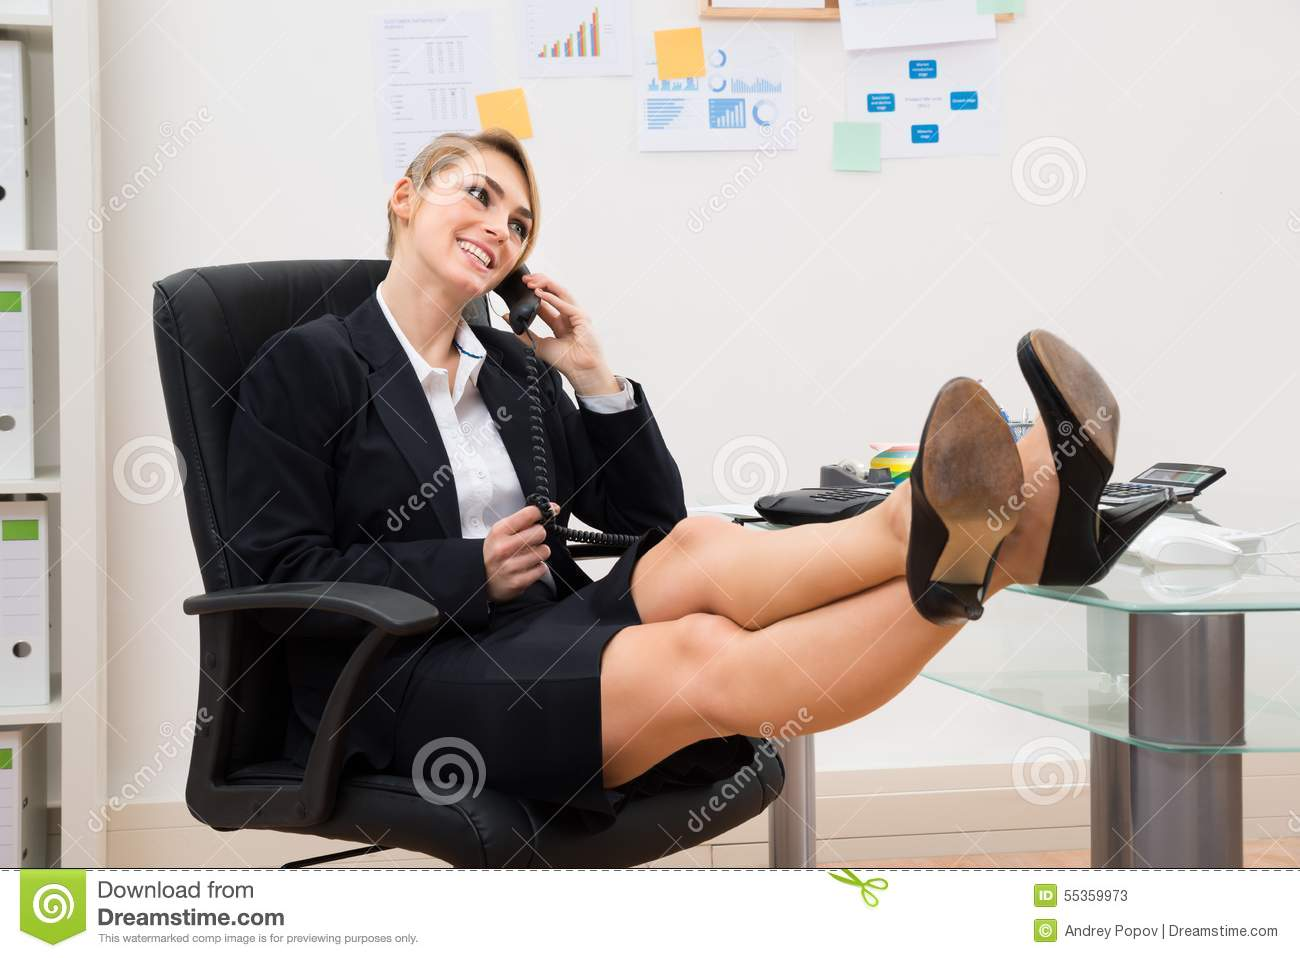 On The Phone With Feet On Desk Stock Photo - Image: 55359973